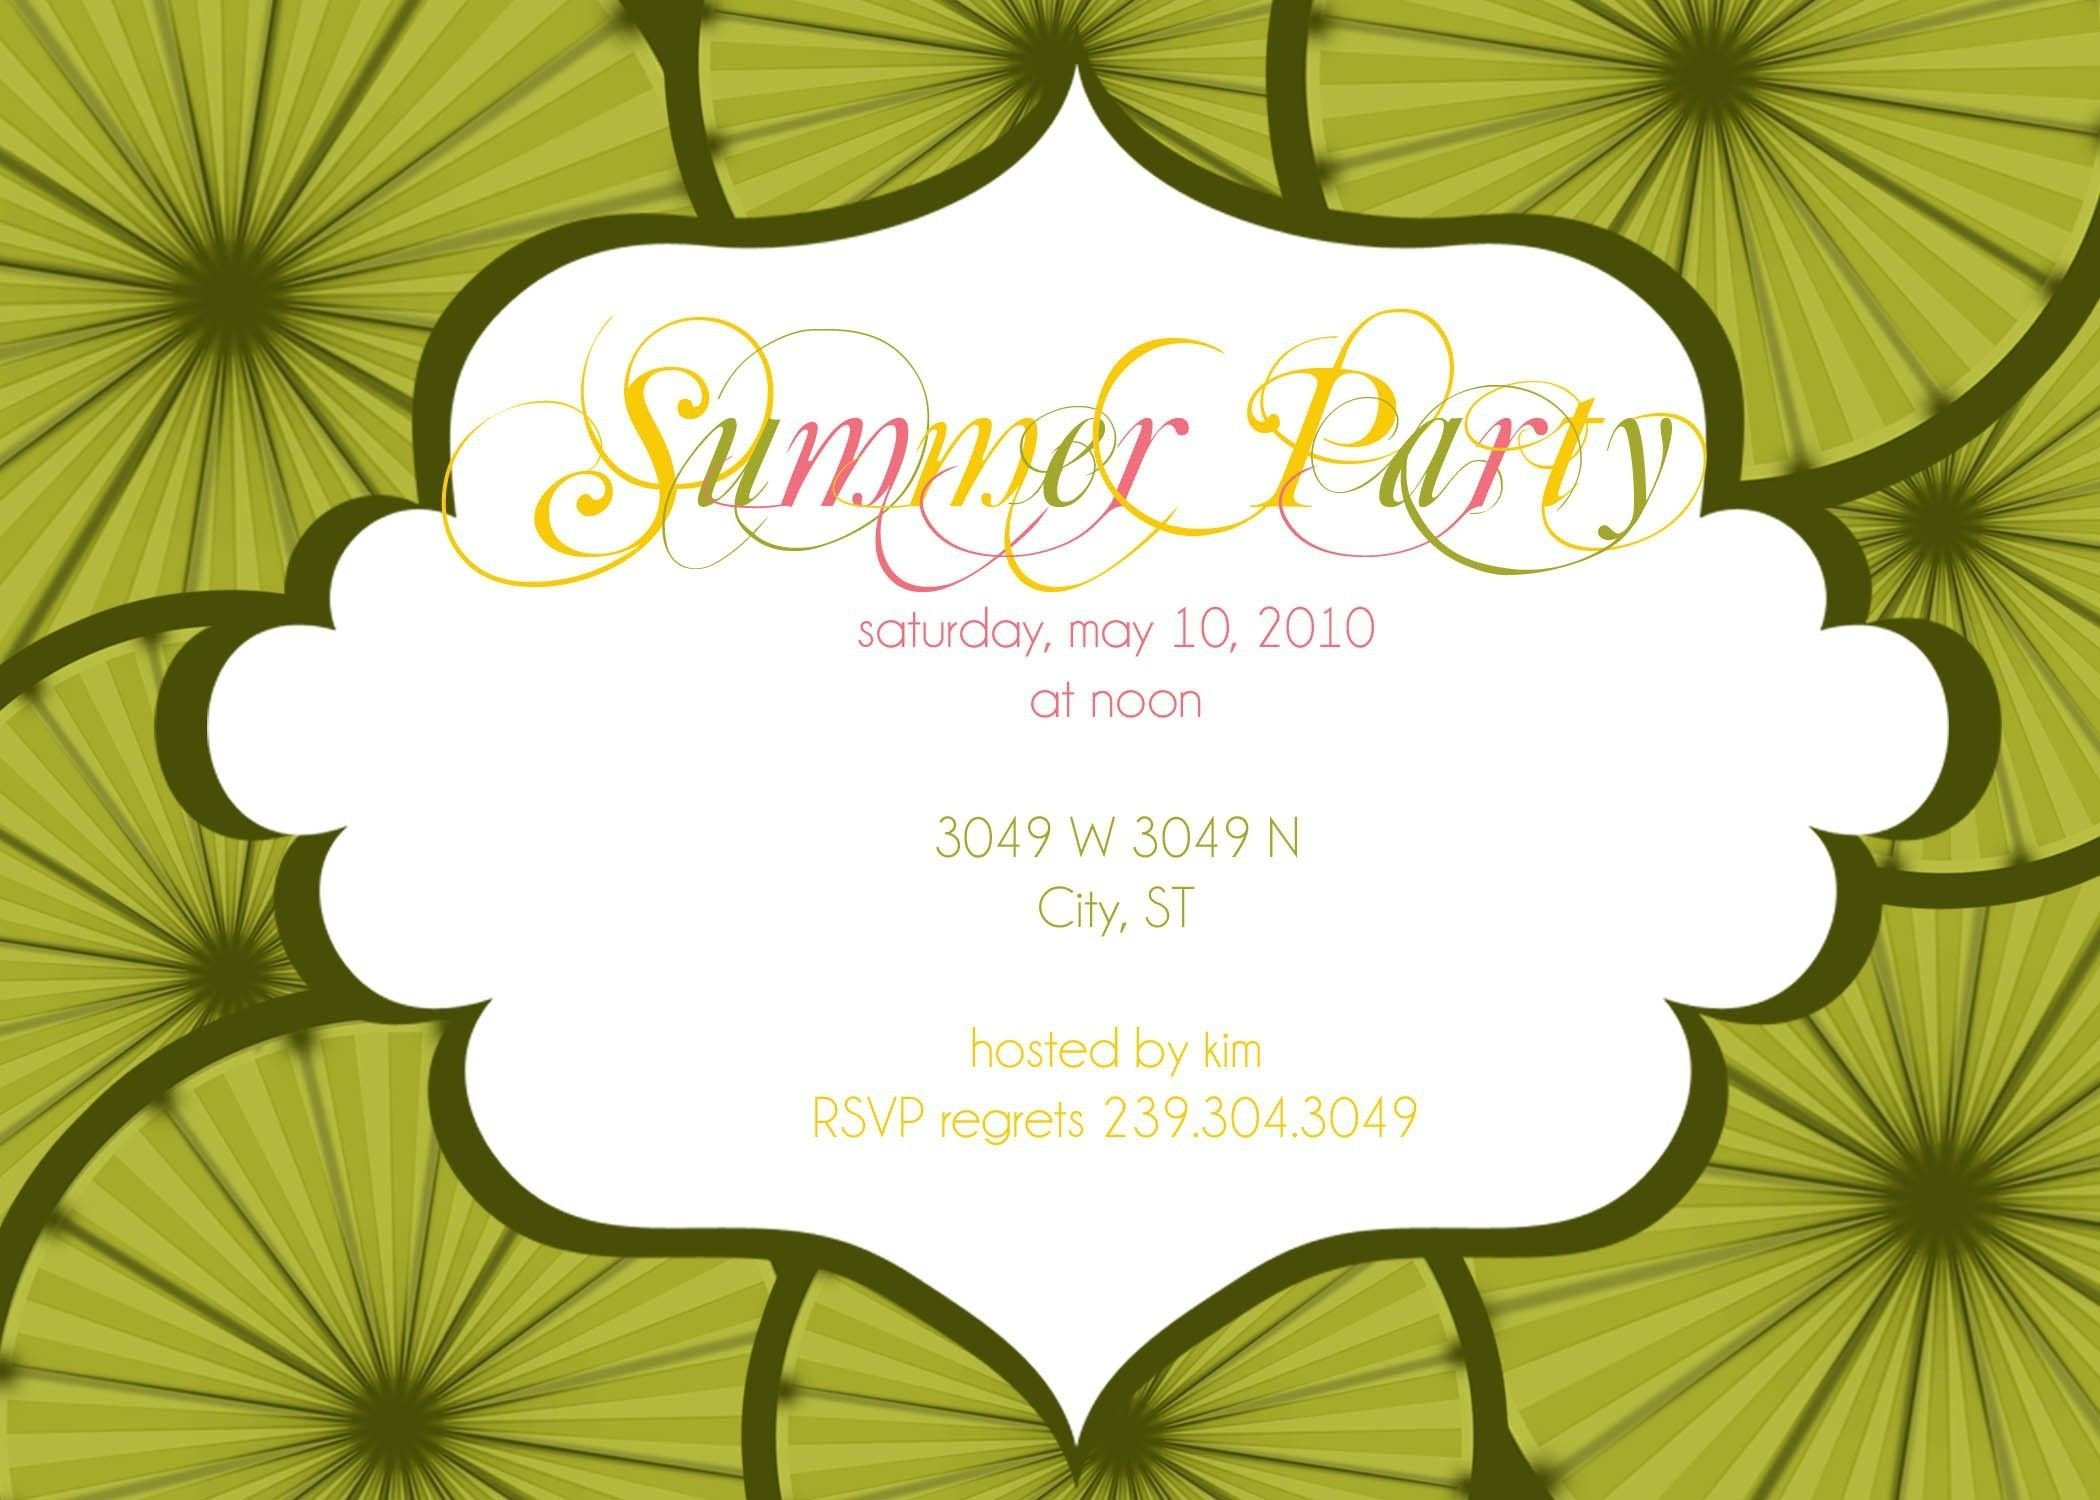 Summer Party Invites Templates Summer Party Invitation Wording Samples